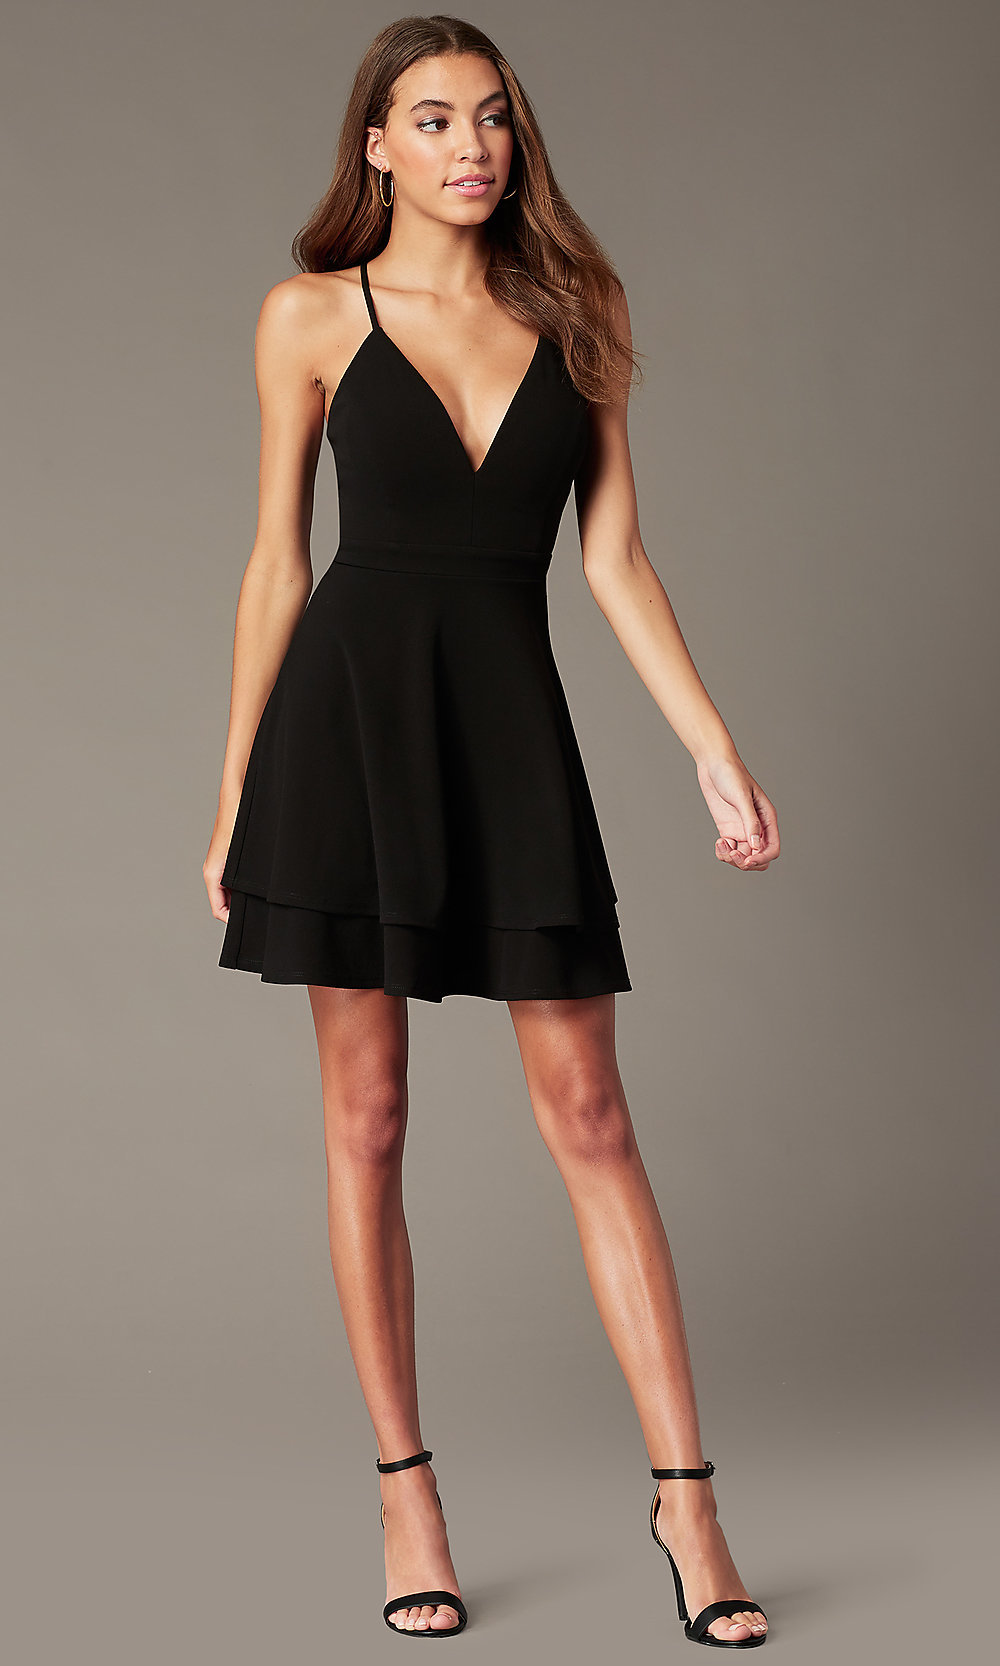 Tiered Black Short Party Dress With